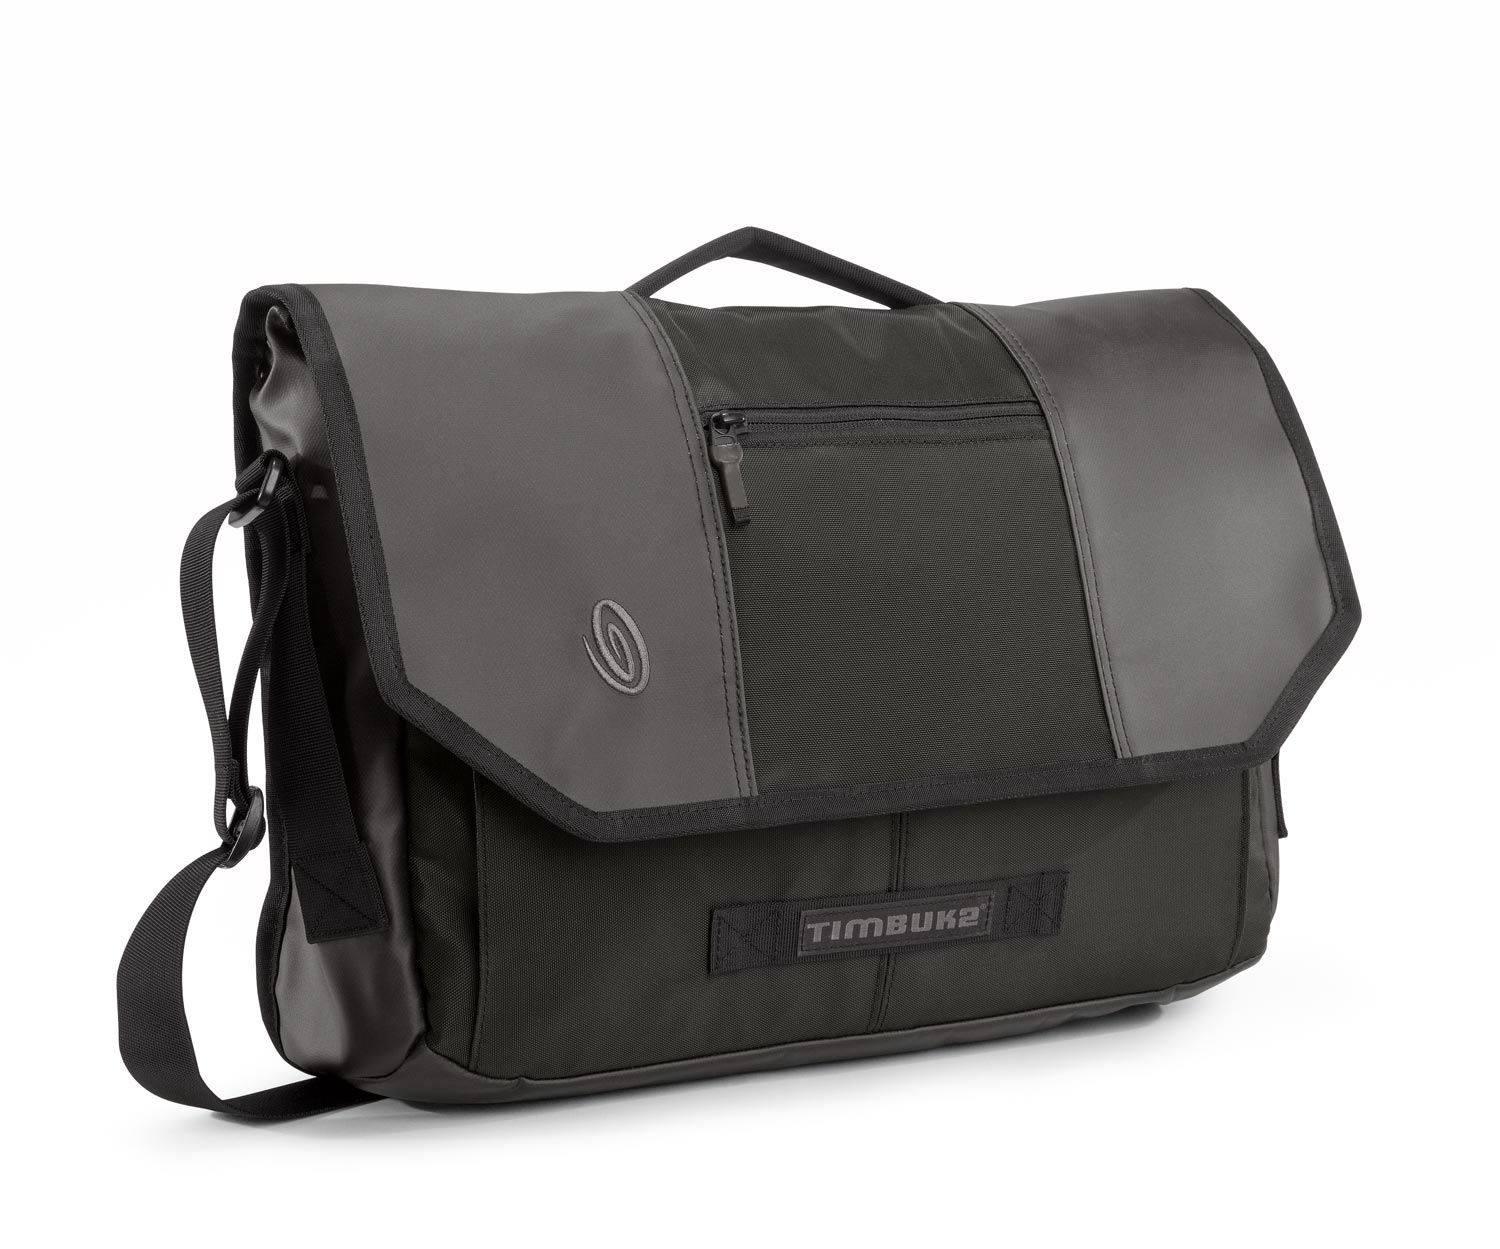 Launchpad Macbook Messenger Bag With Images Bags Messenger